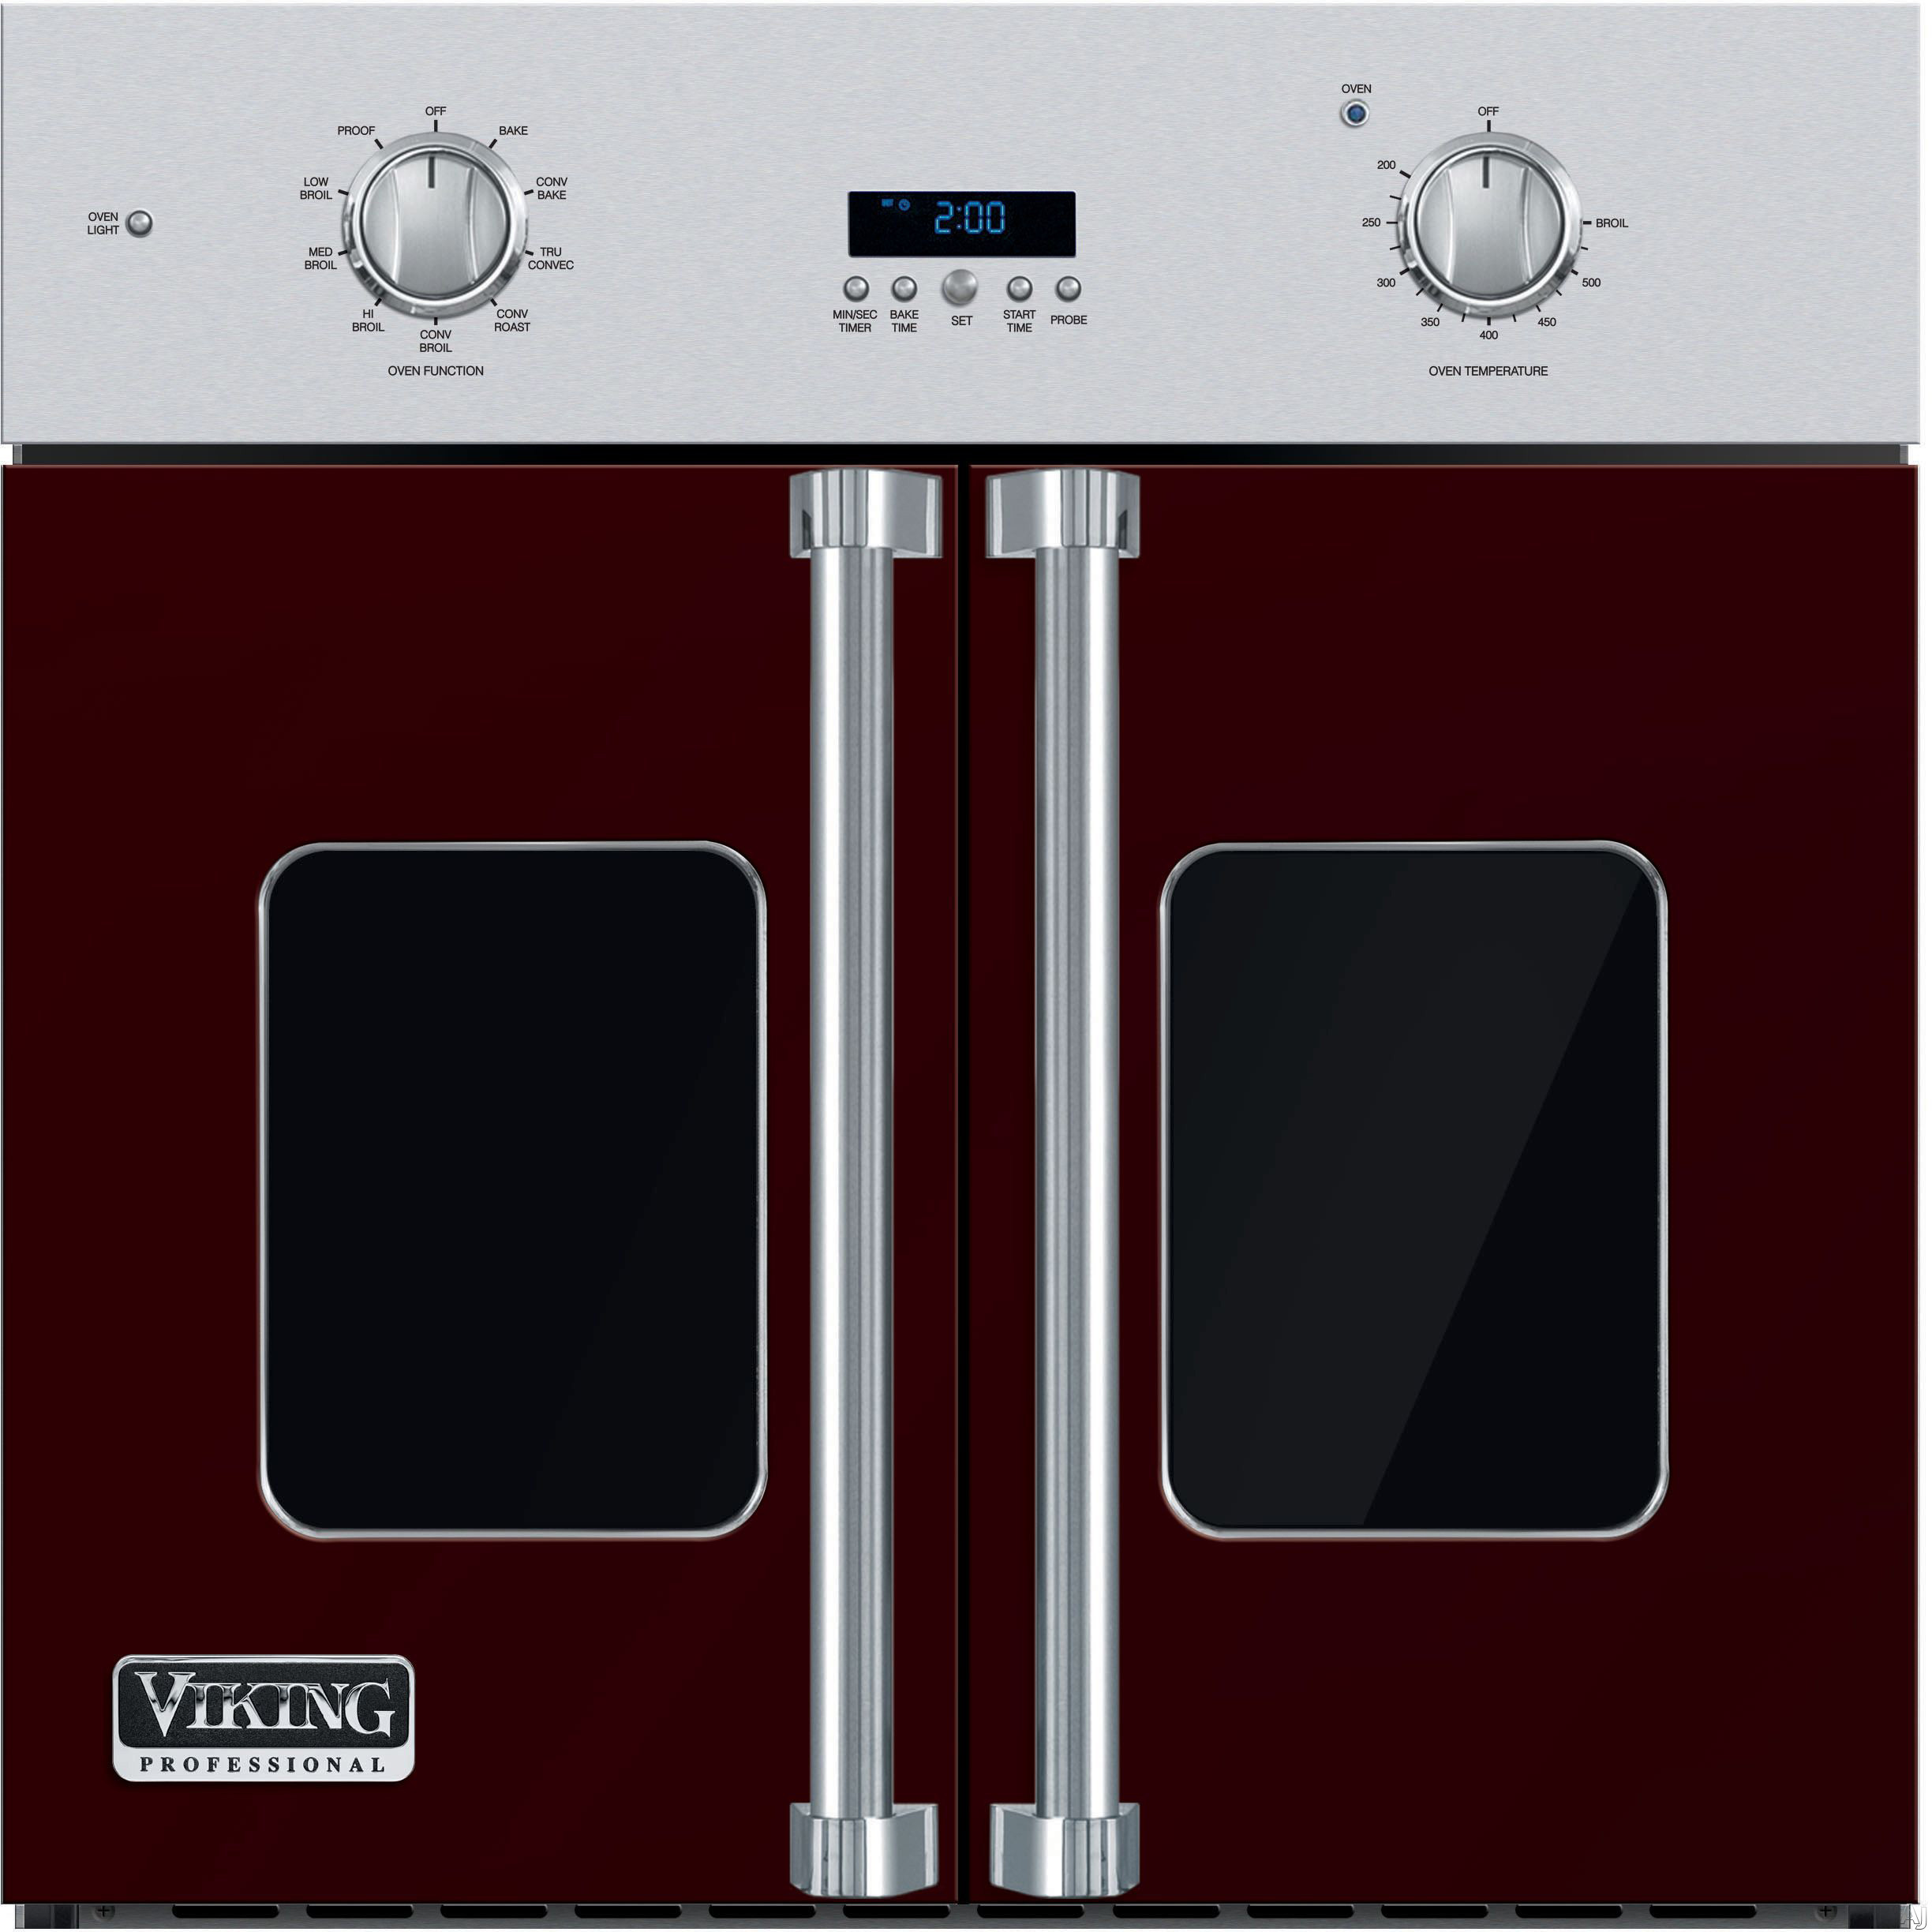 Viking Professional 7 Series VSOF730BU 30 Inch Single French Door Wall Oven with 4.7 cu. ft. Vari-Speed Dual Flow TruConvec Cooking Capacity, Gourmet-Glo Glass Enclosed Infrared Broiler, Rapid Ready P